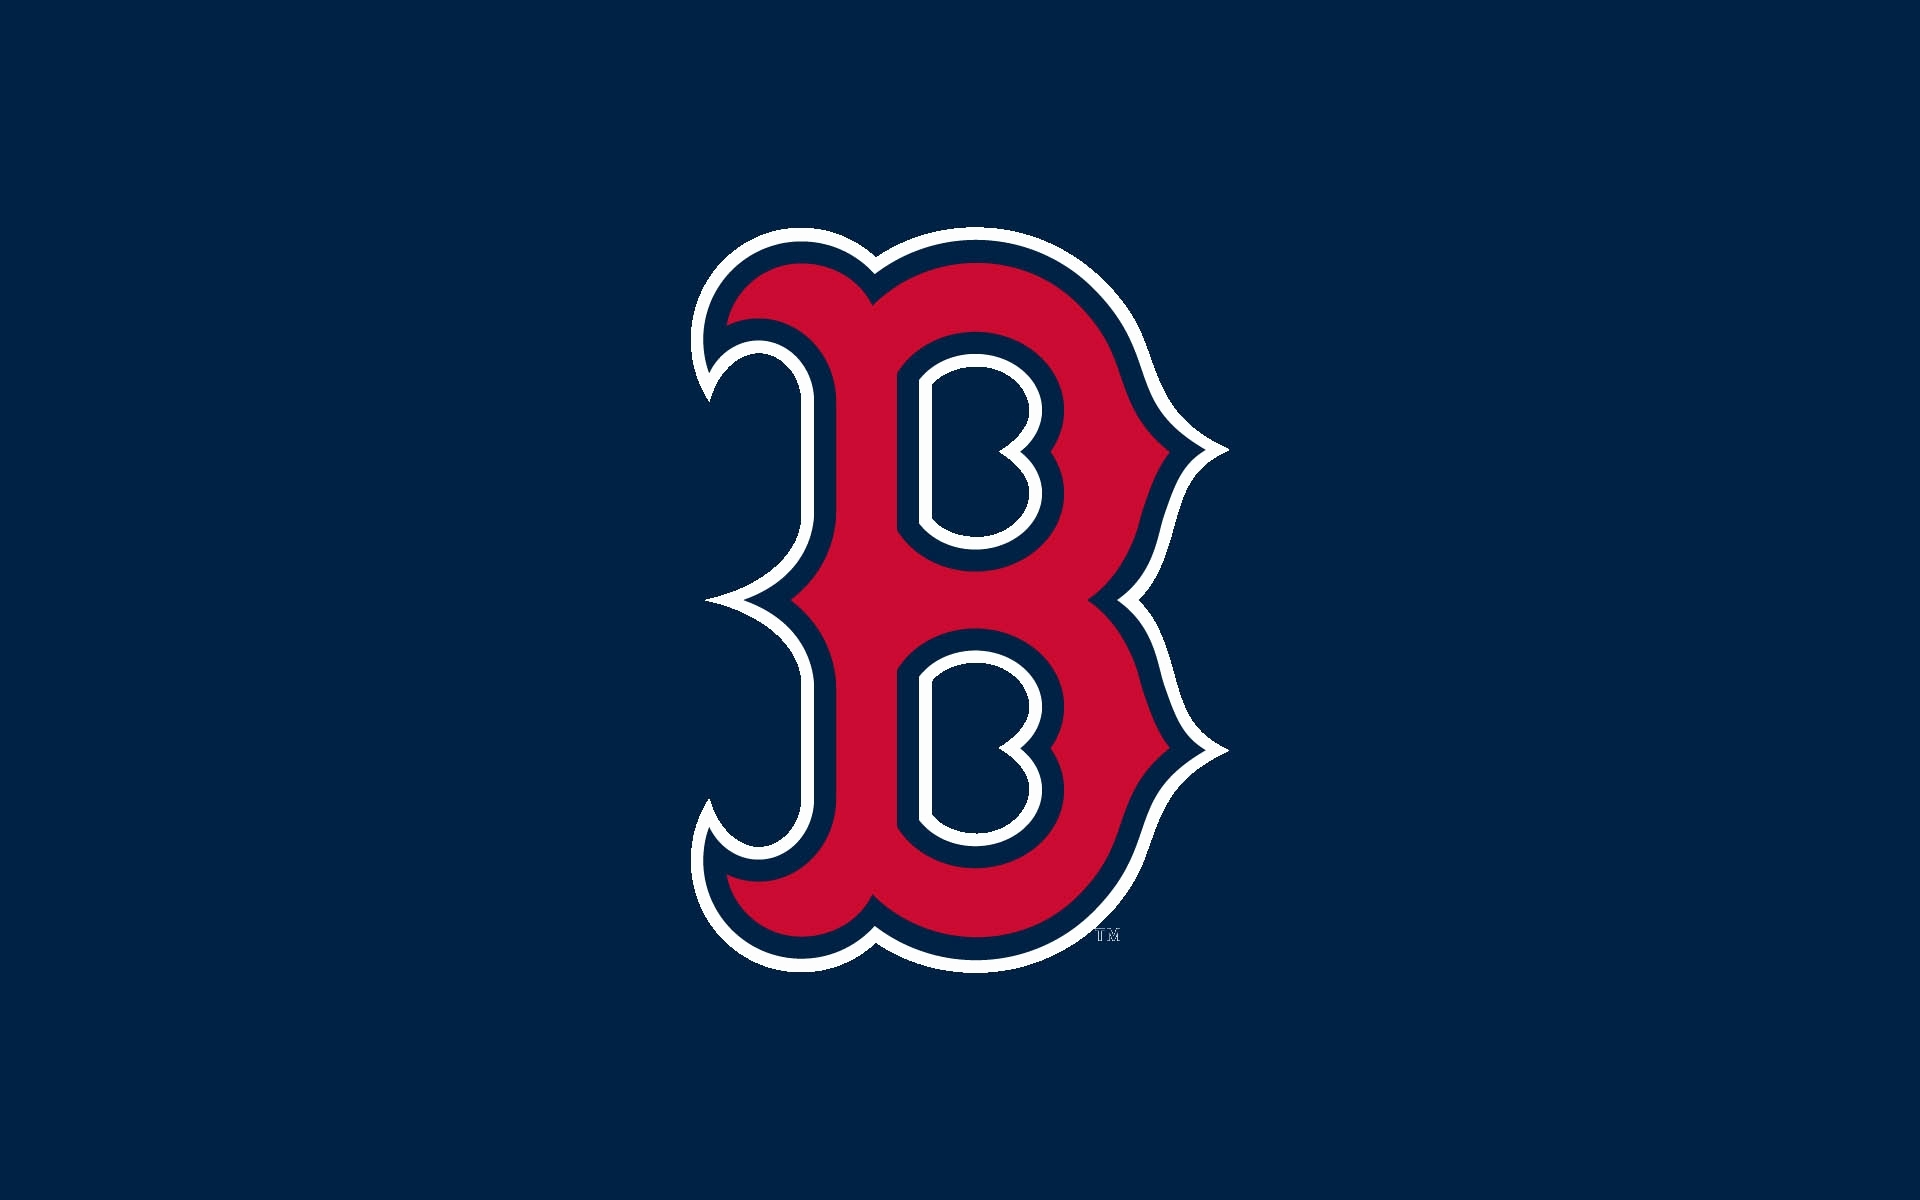 16 luxury red sox wallpaper pictures - hd wallpaper collection | hd